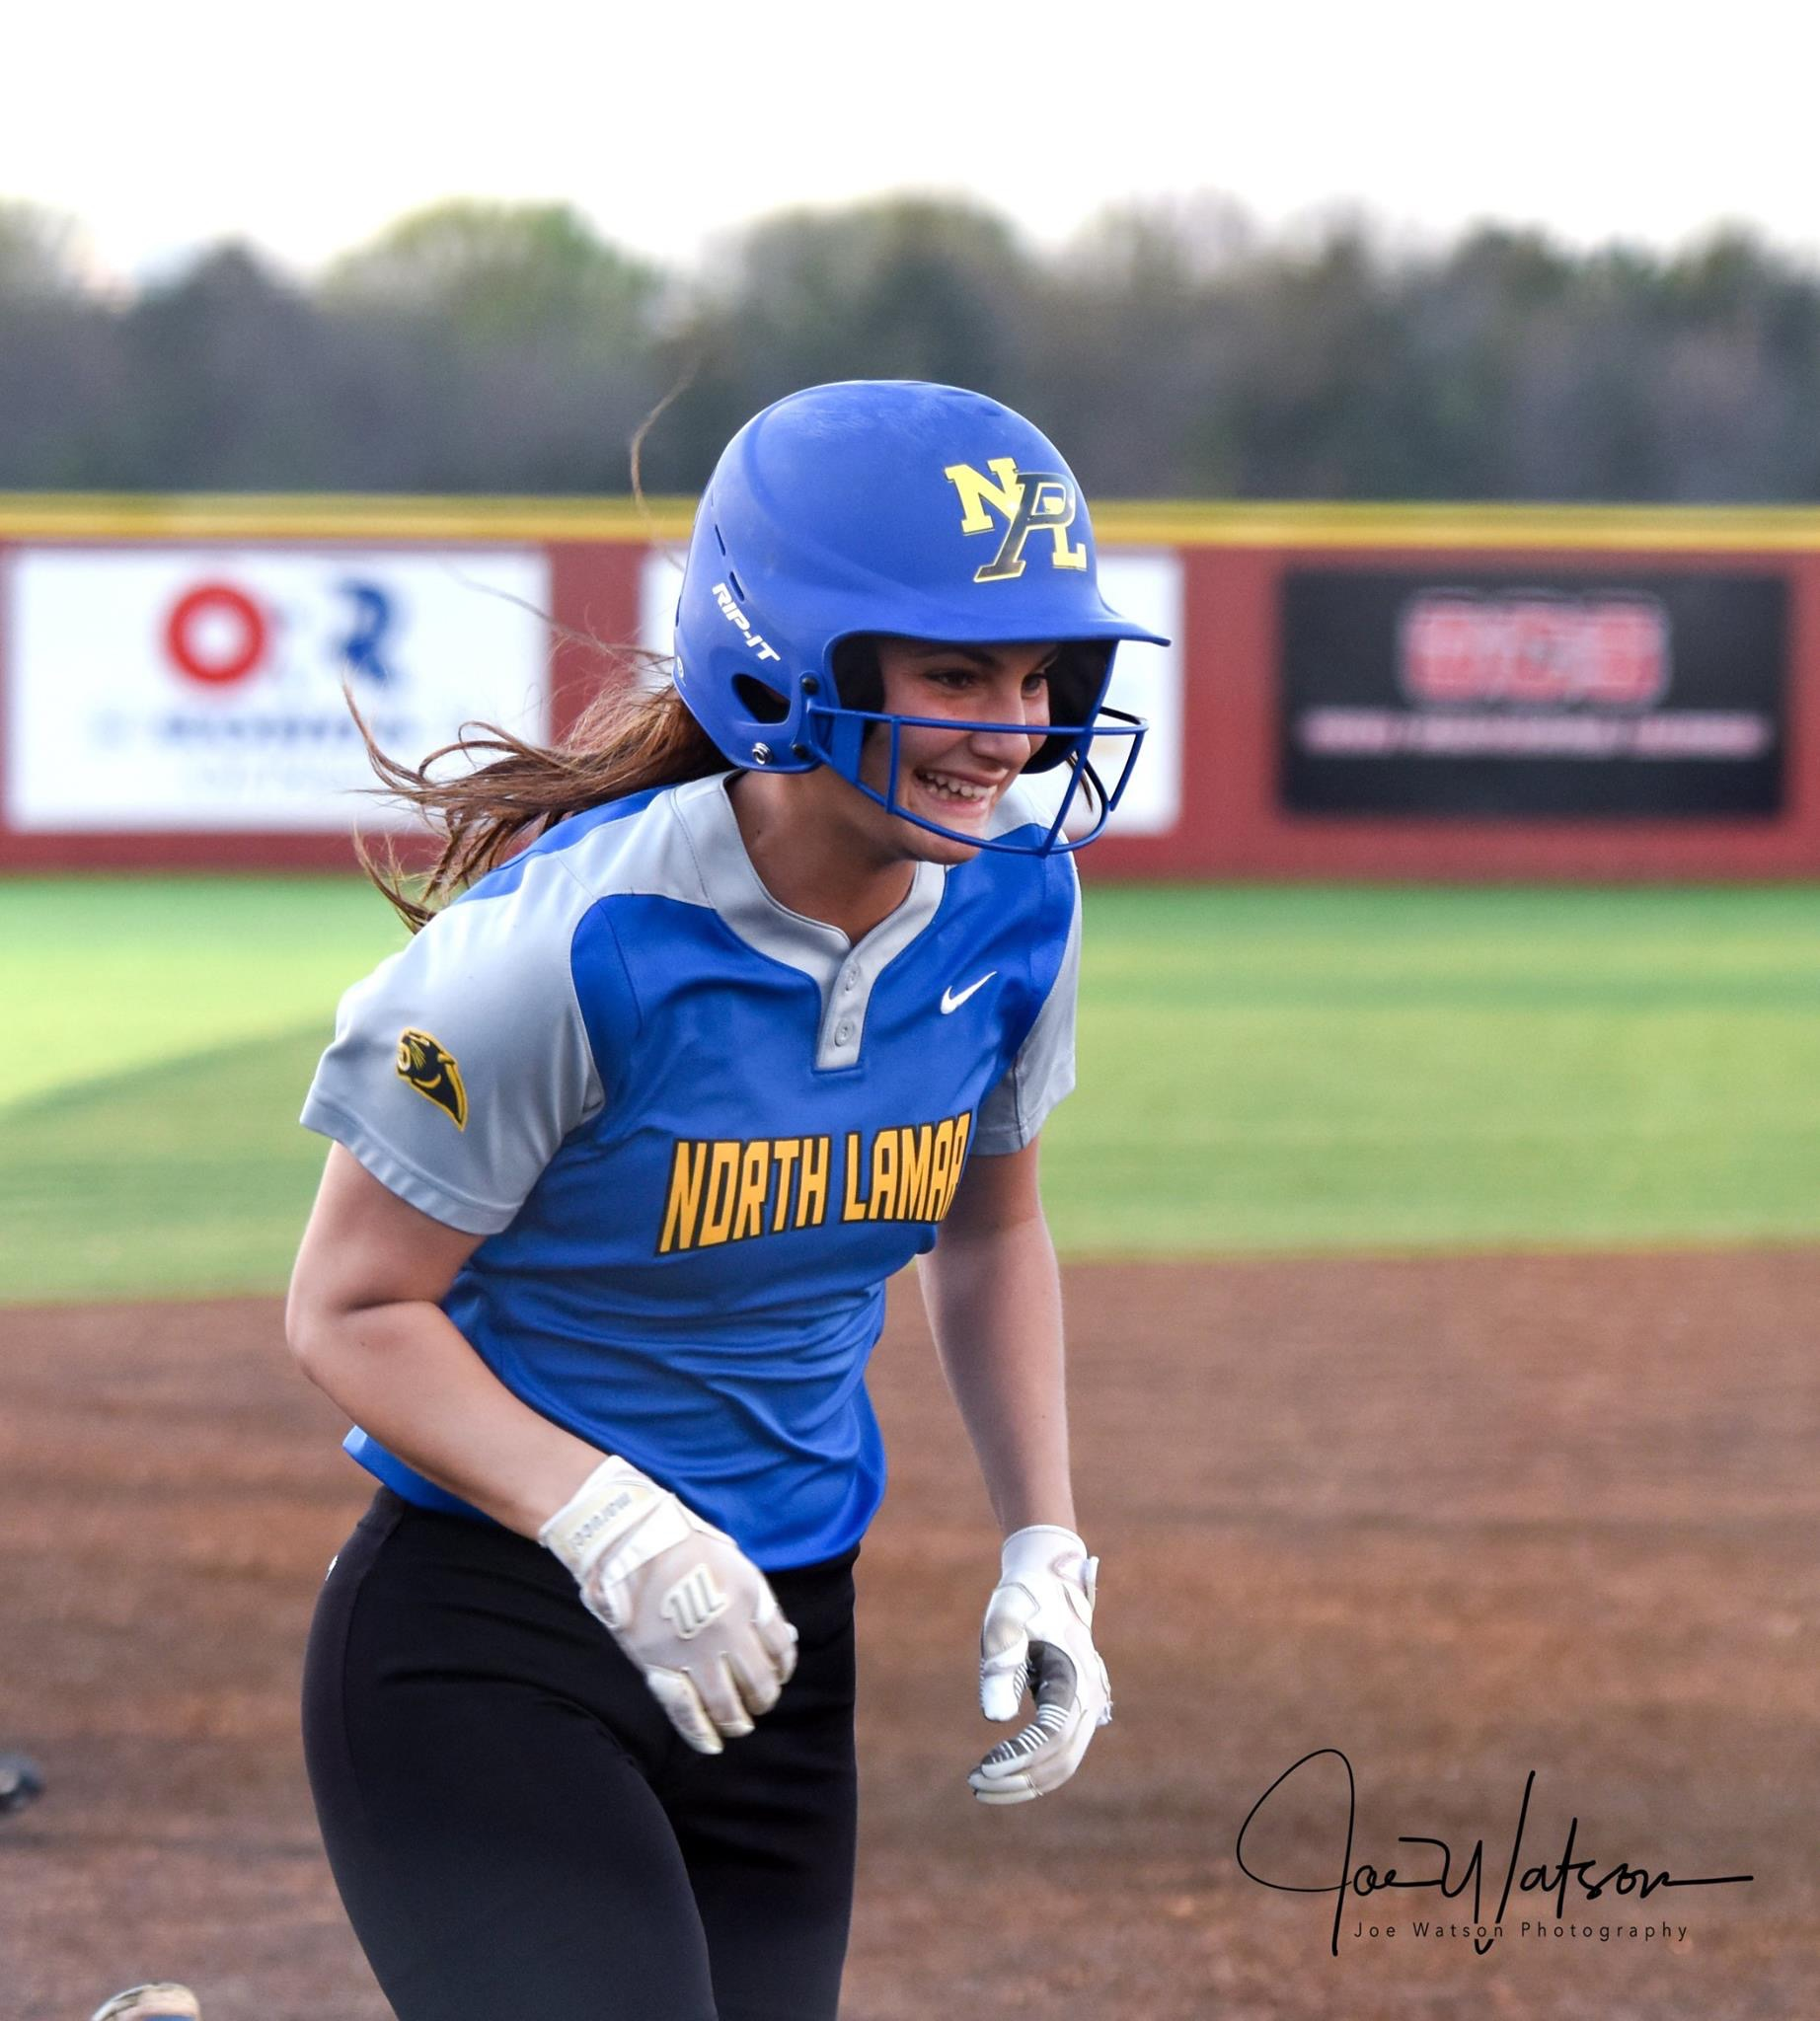 (Photo by Joe Watson) Madison Morrison rounding third base after a first inning home run against Paris.